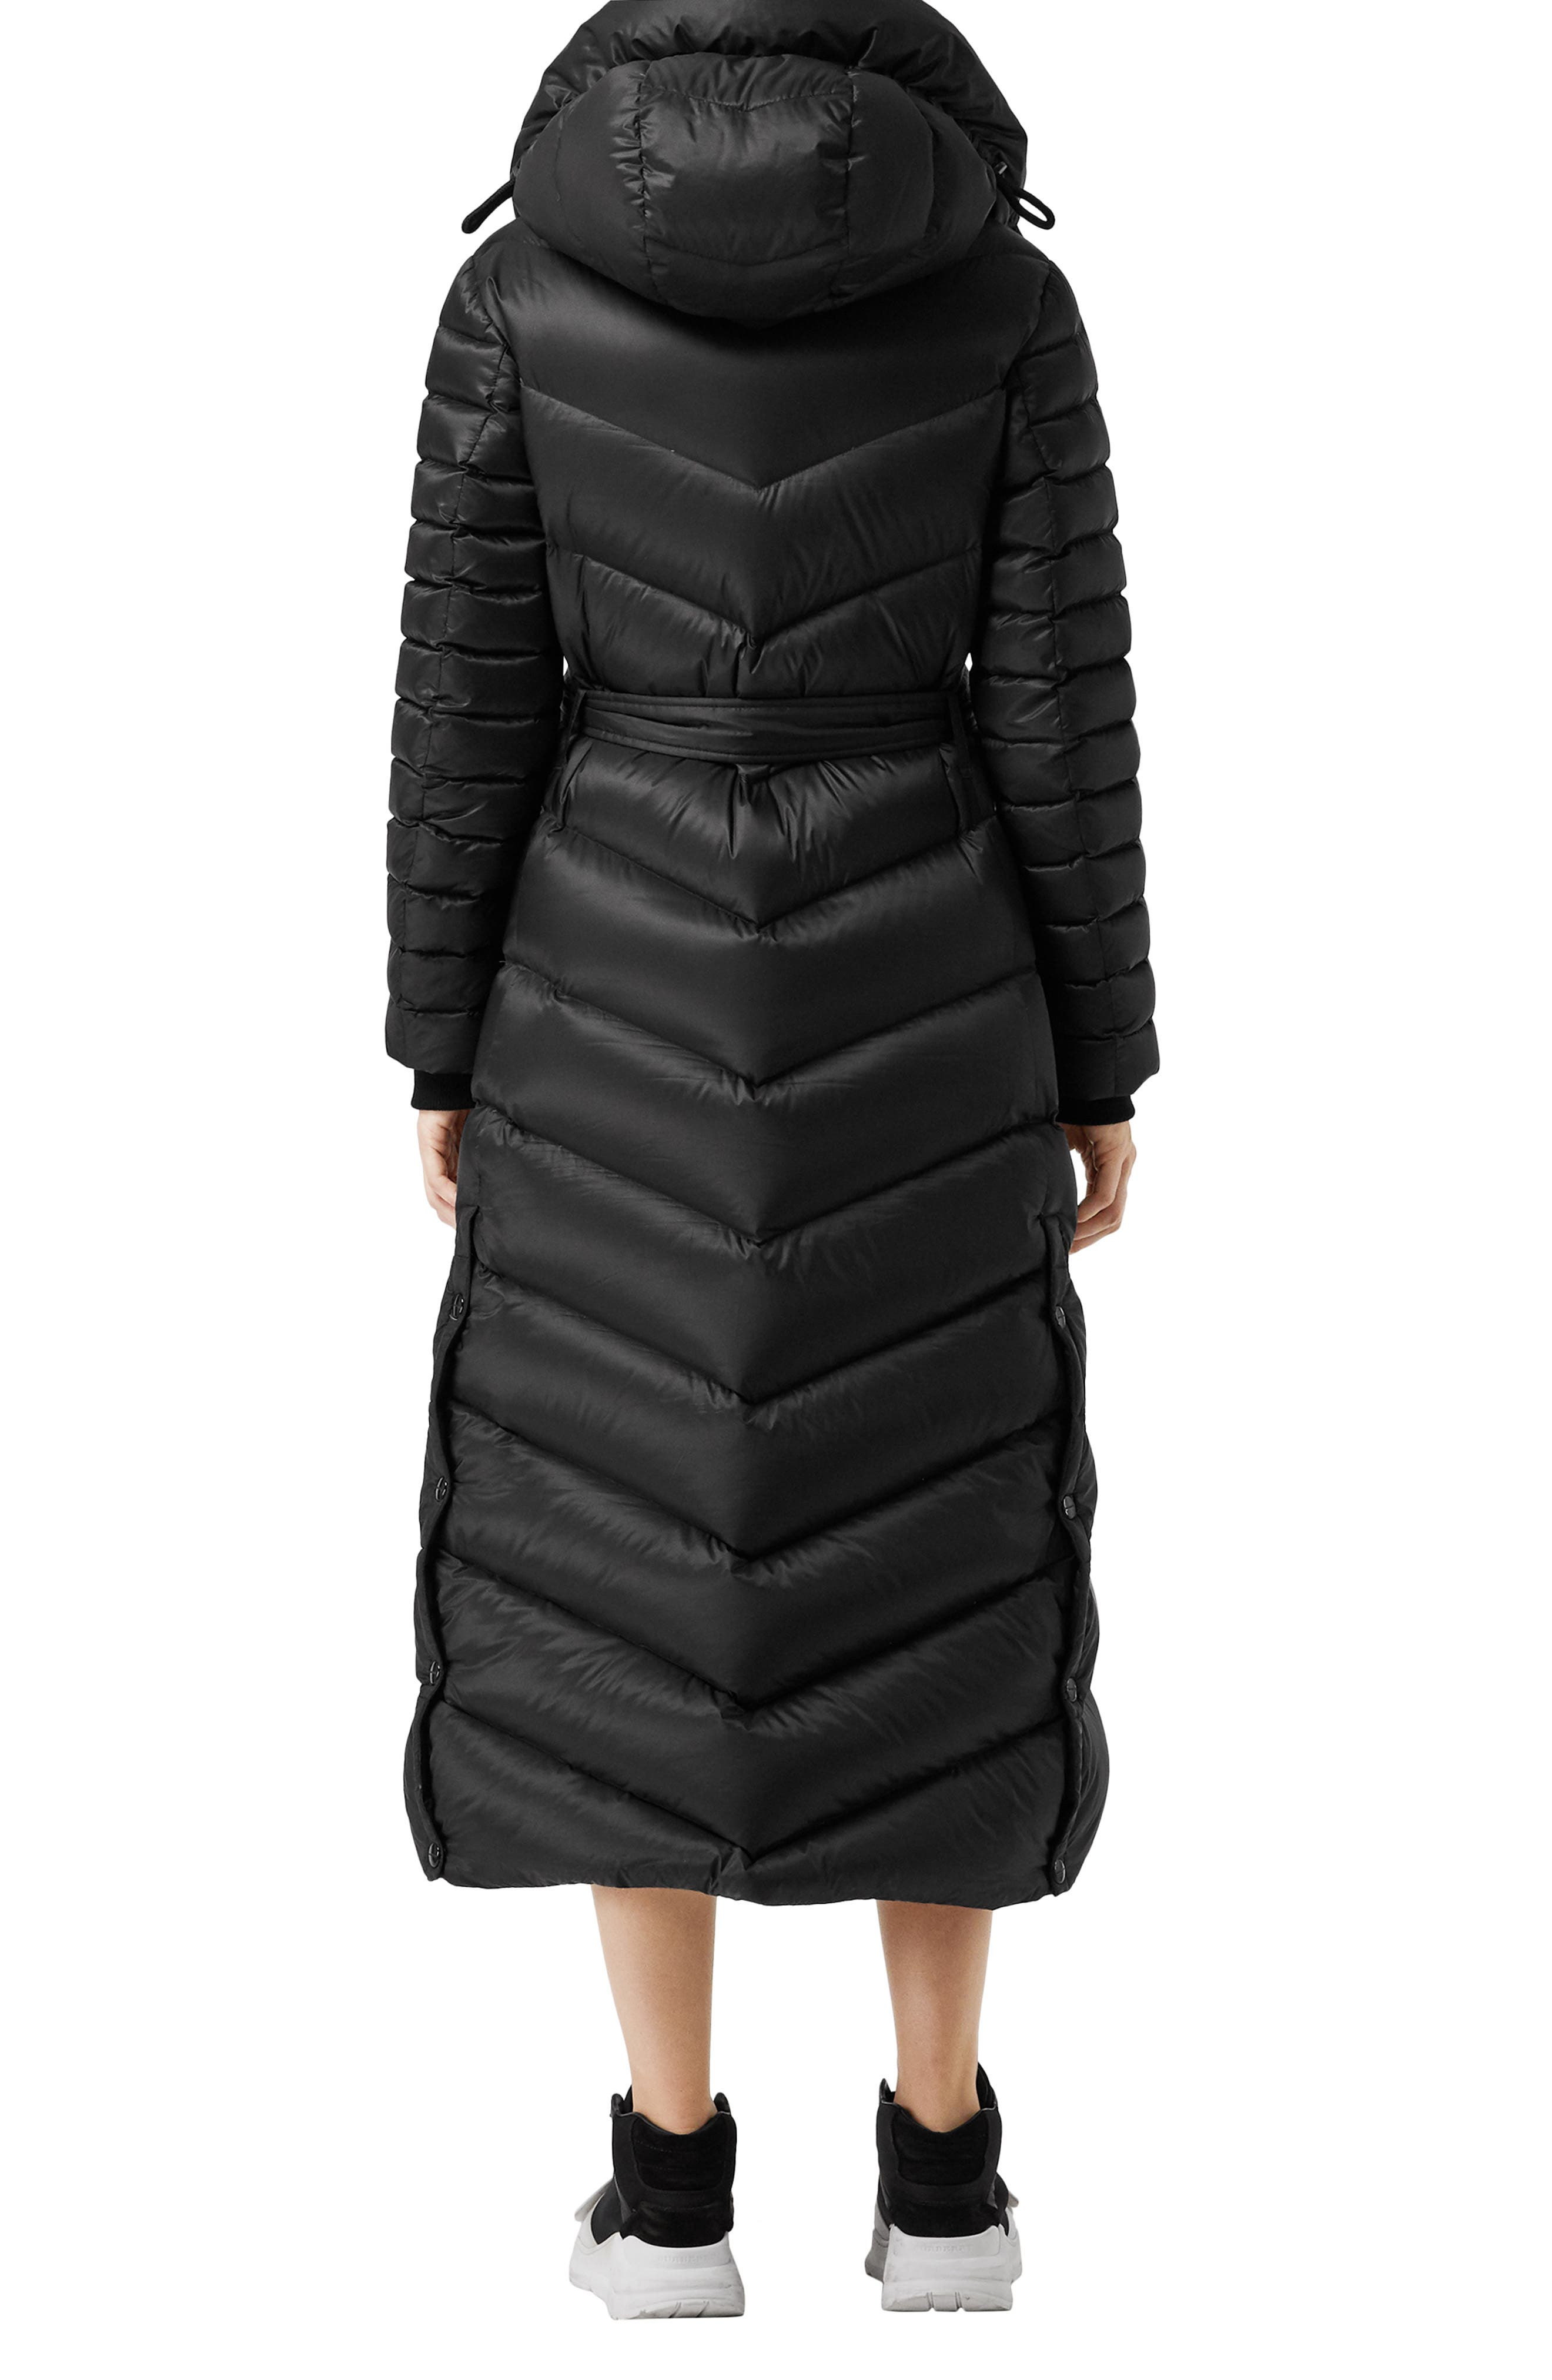 Kington Faux Fur Trim Long Down Coat,                             Alternate thumbnail 2, color,                             BLACK